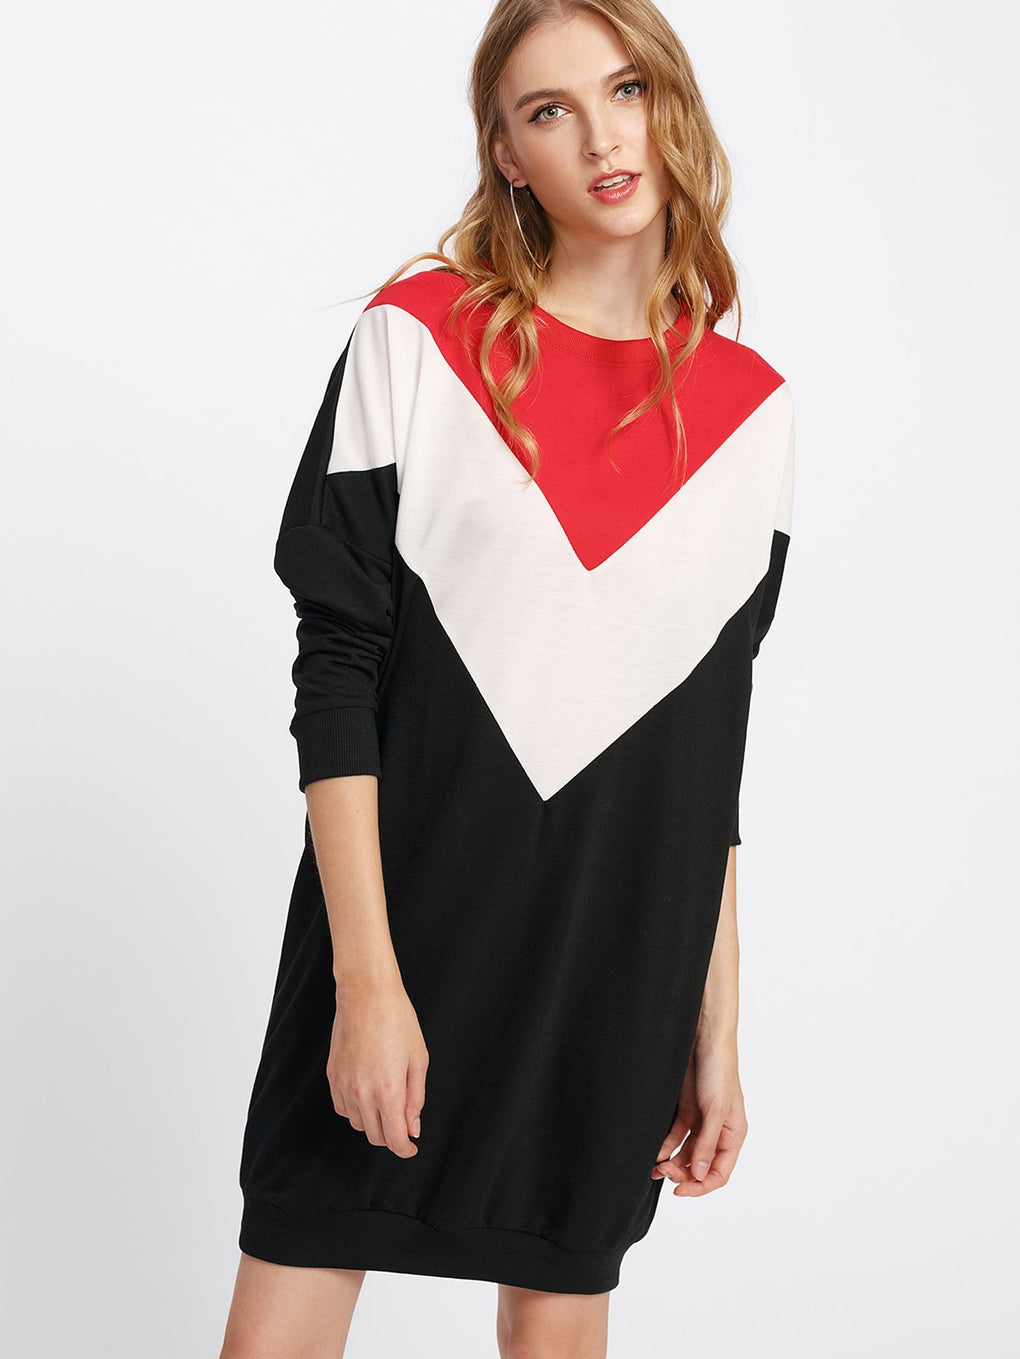 Cut And Sew Color Block Sweatshirt Dress - Danish Fashion & Living Online Store SALE